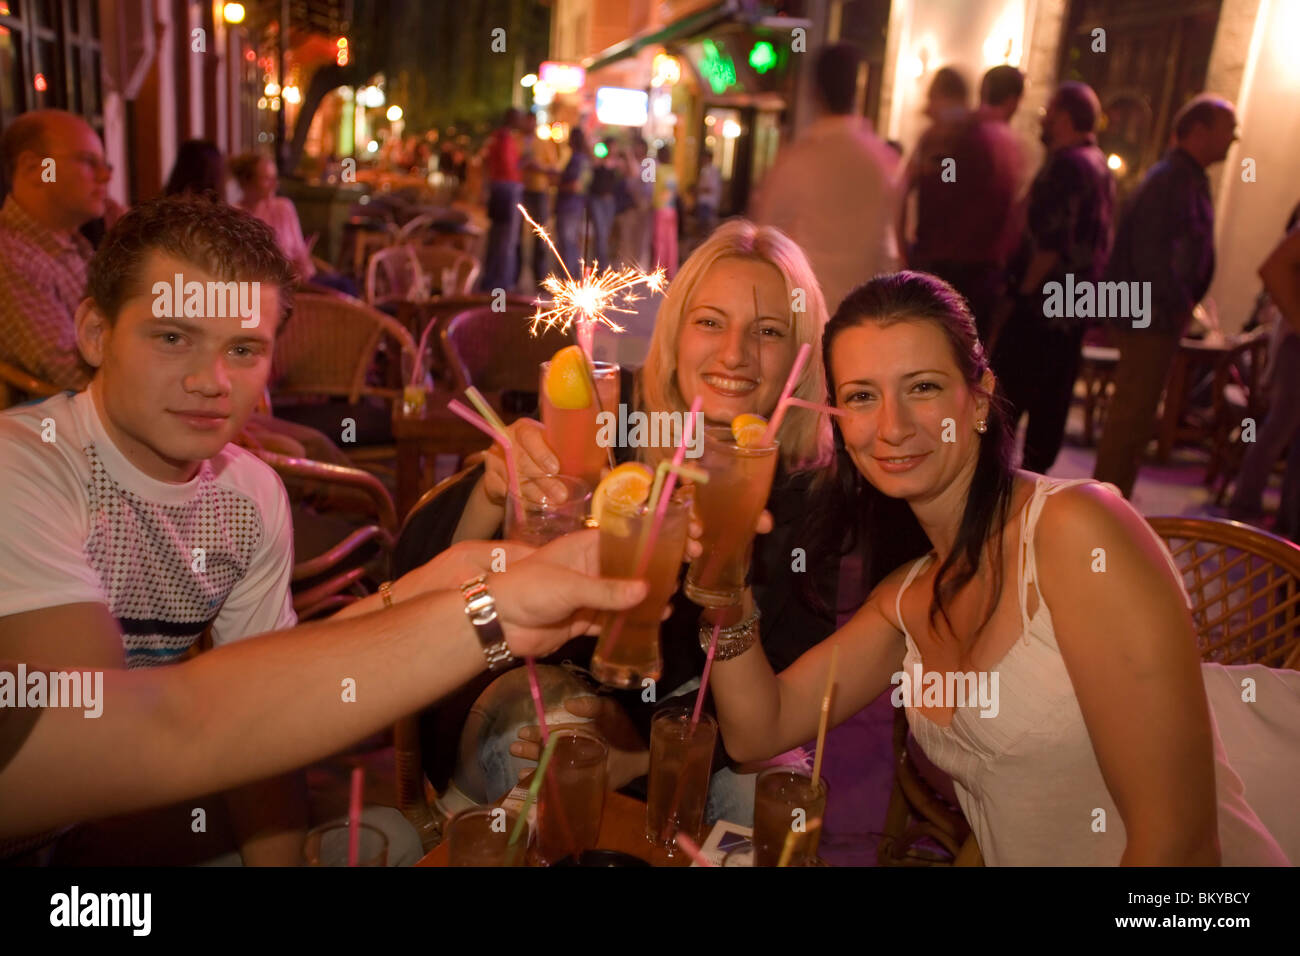 Gallery images and information kos greece nightlife - Young People Toasting With Drinks In An Open Air Bar At Night Kos